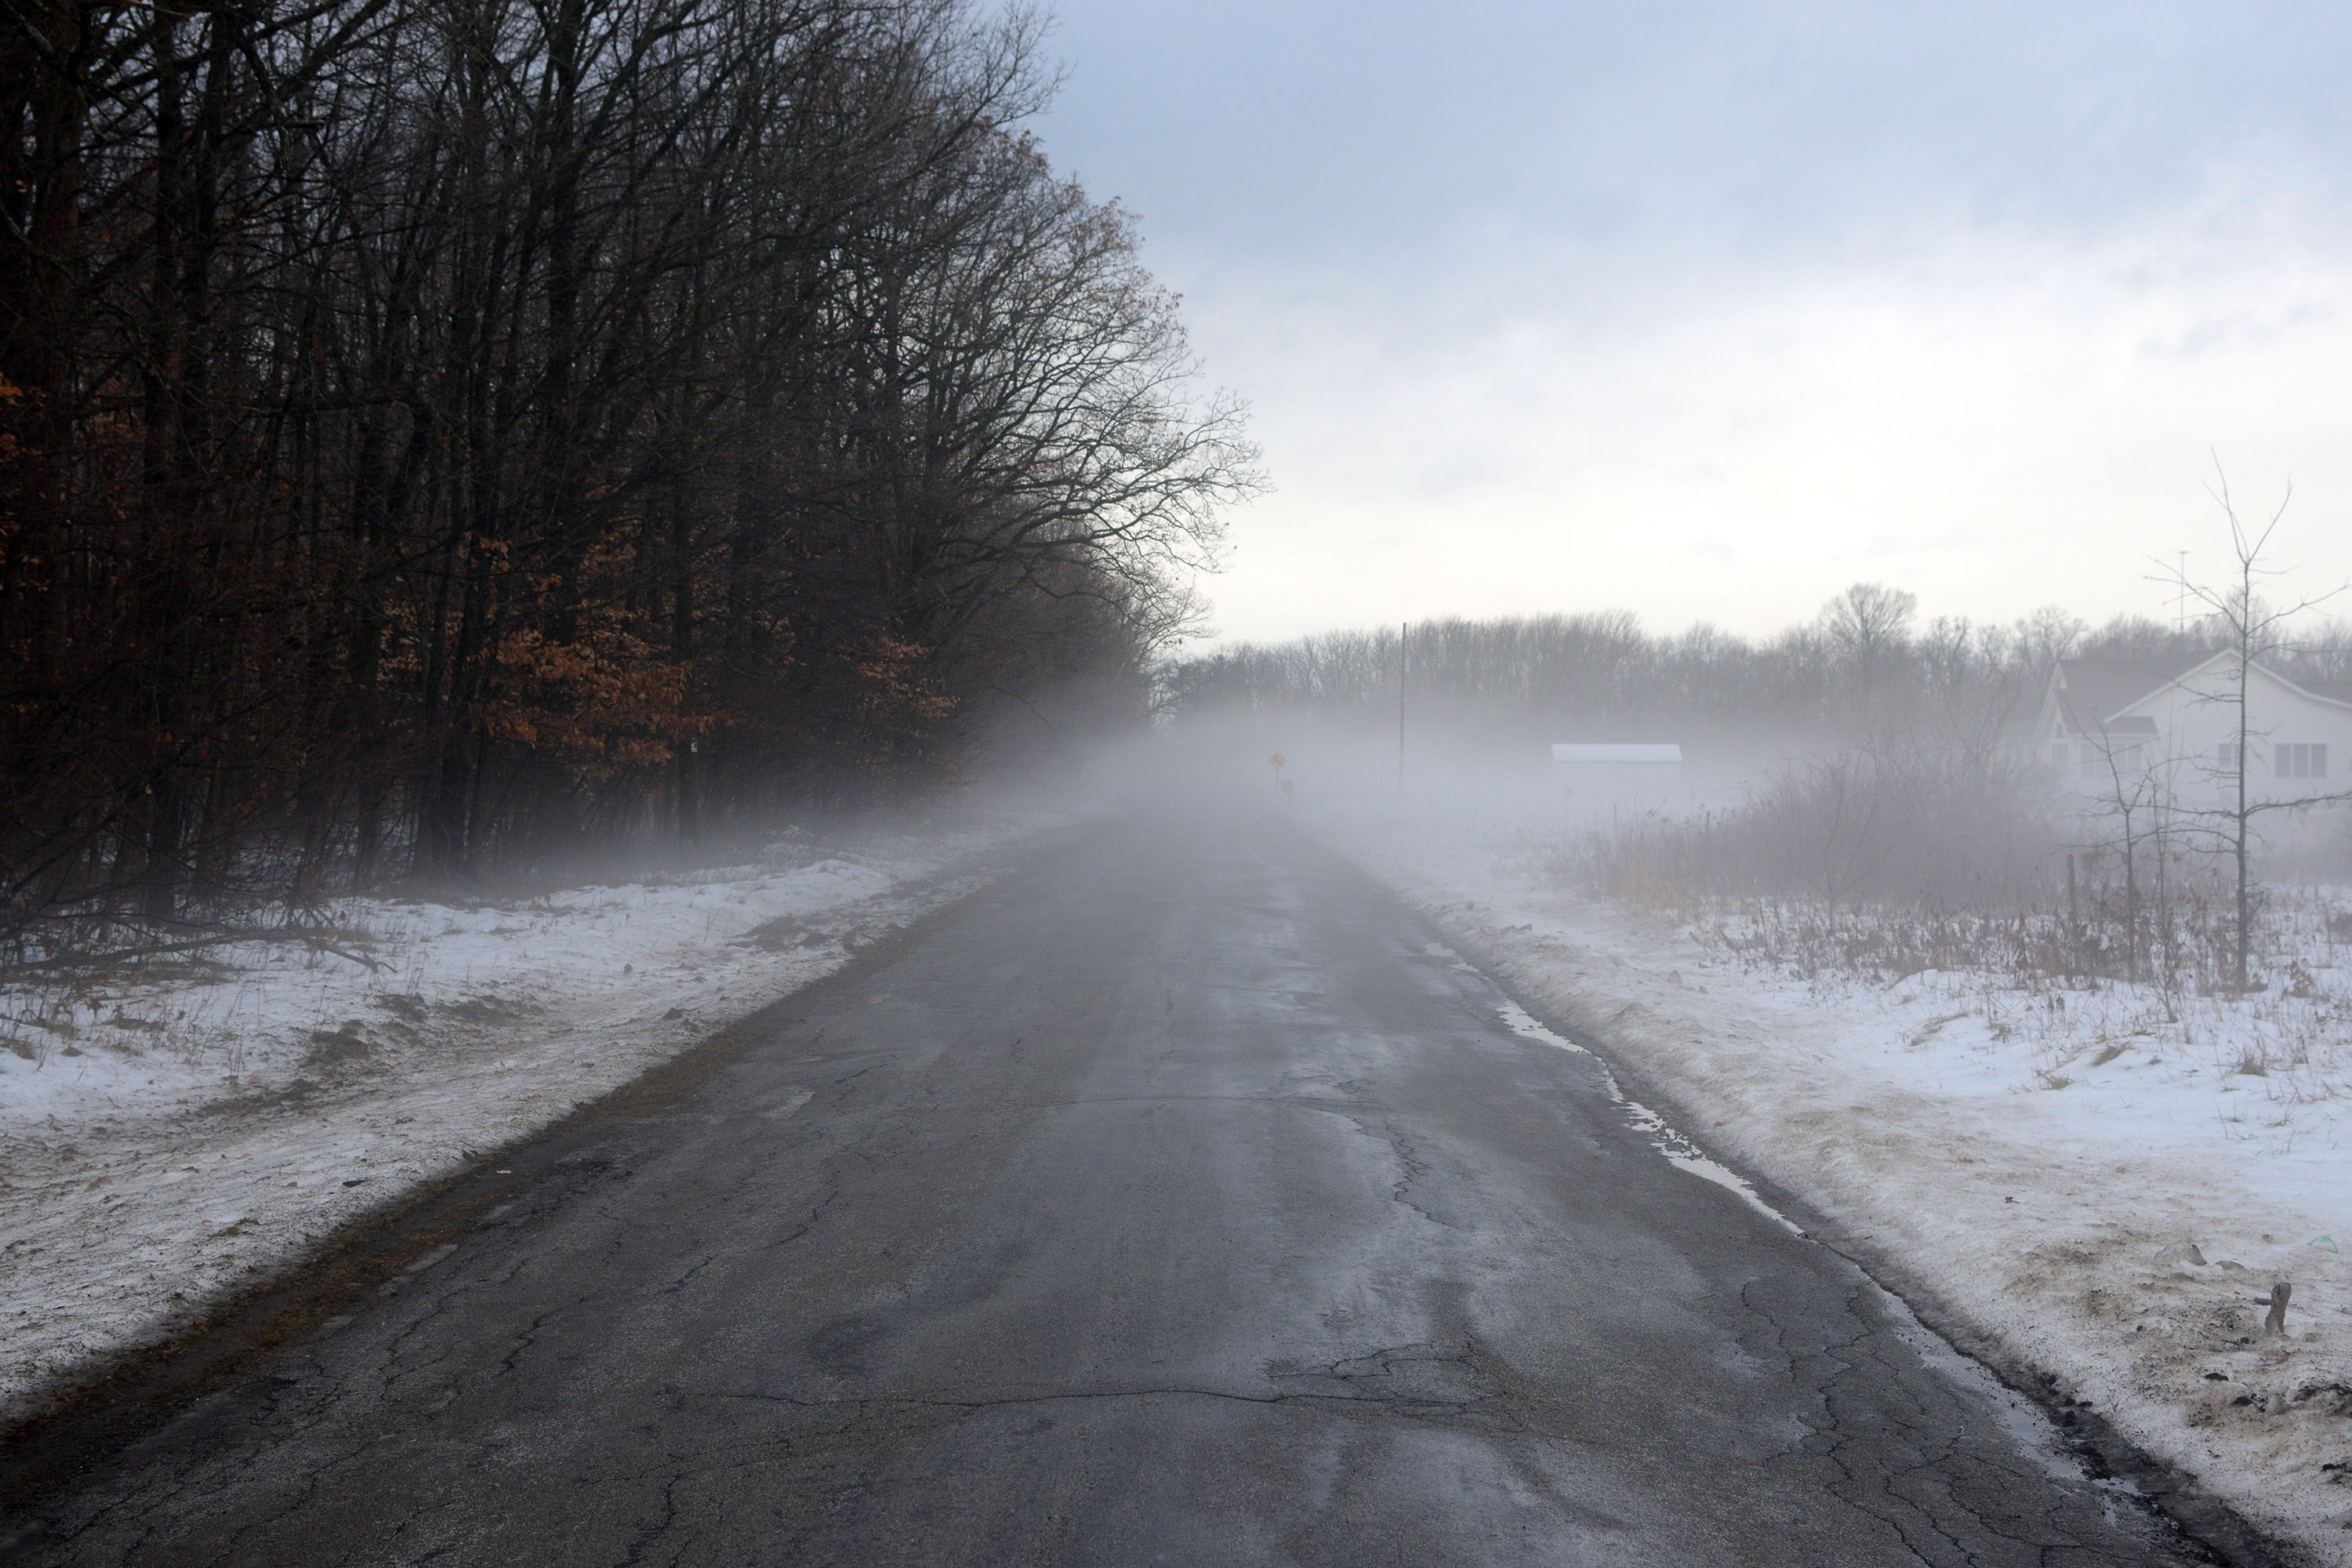 Really foggy areas during a bike ride when the temperature got up to about 56F